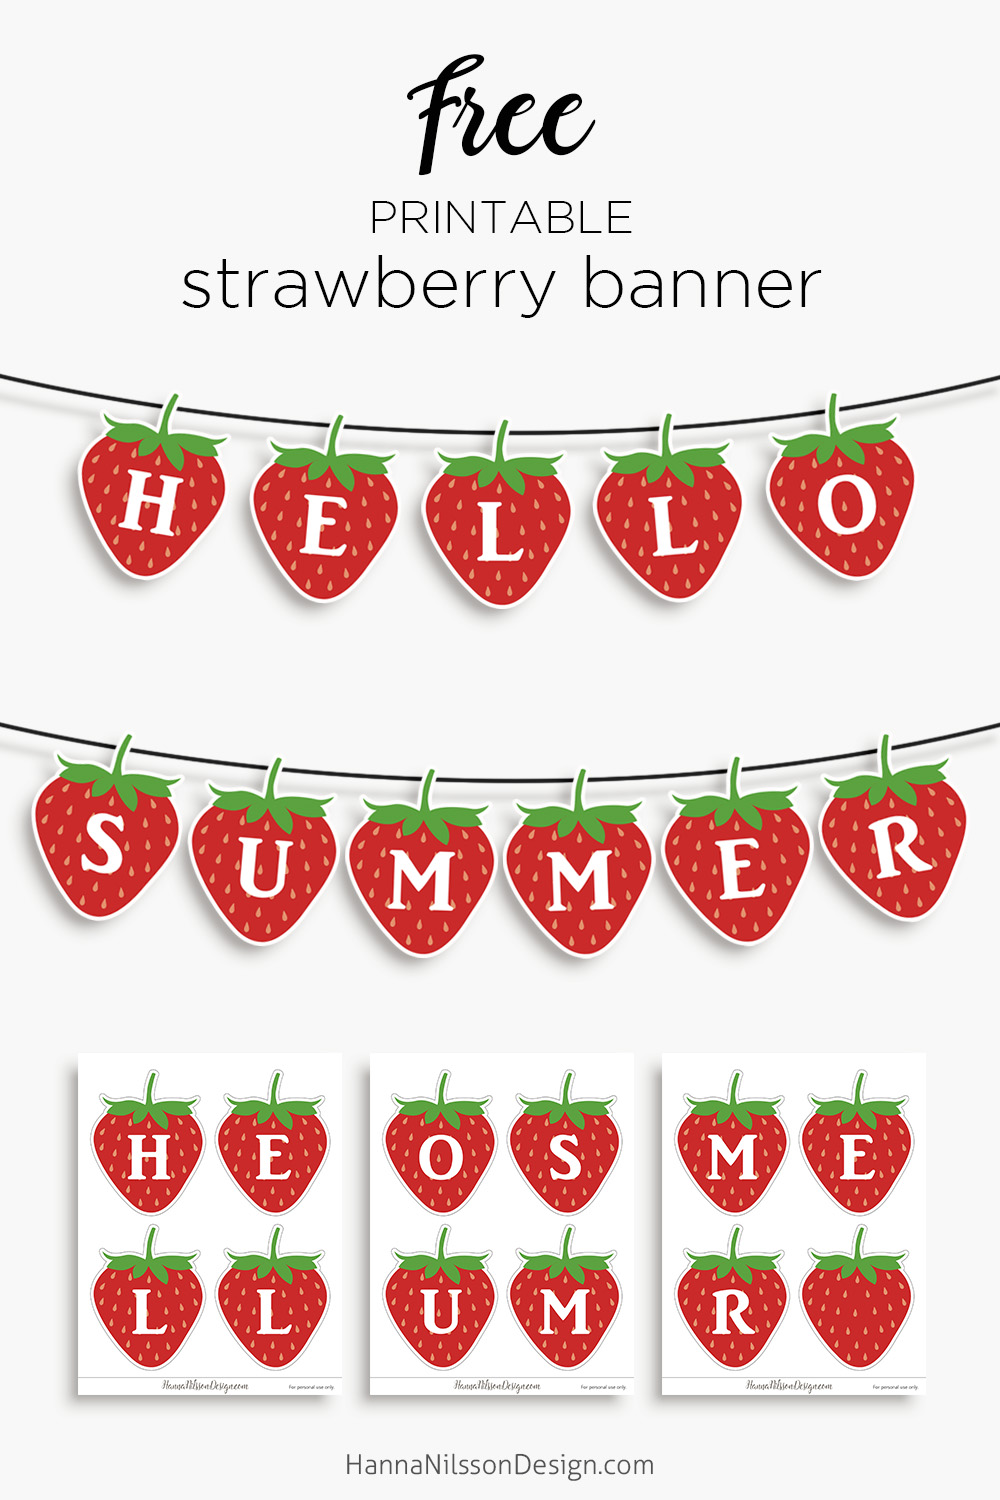 picture relating to Strawberry Printable named Good day Summertime Strawberry banner cost-free printable dwelling decor